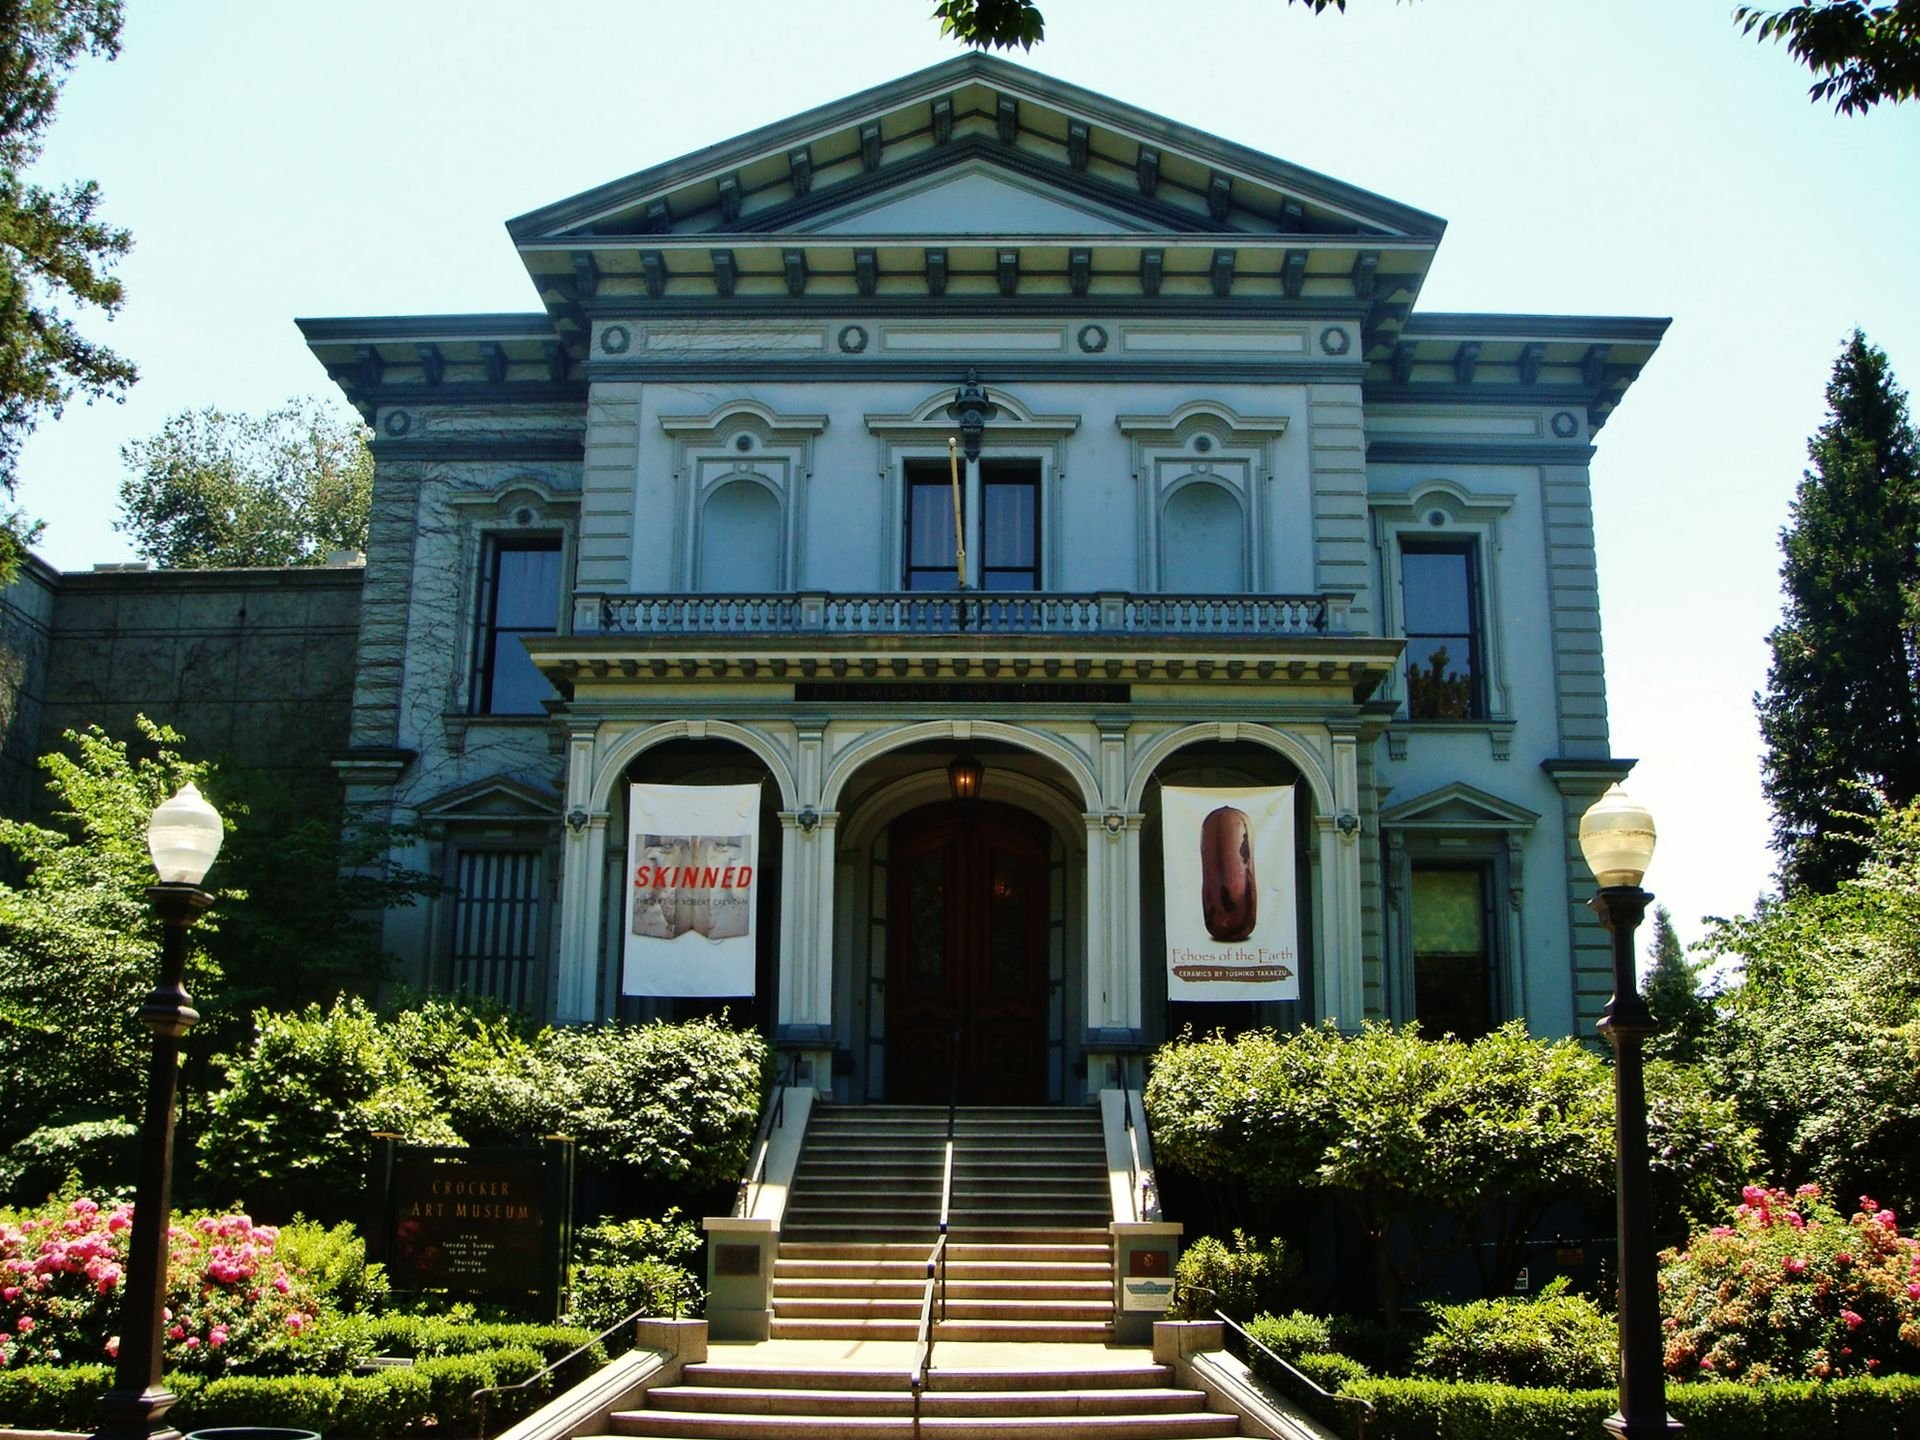 This Italianate mansion was purchased by the Crockers in 1868 and renovated to be their home and art gallery. It still serves as an art gallery today. Wikimedia Commons.